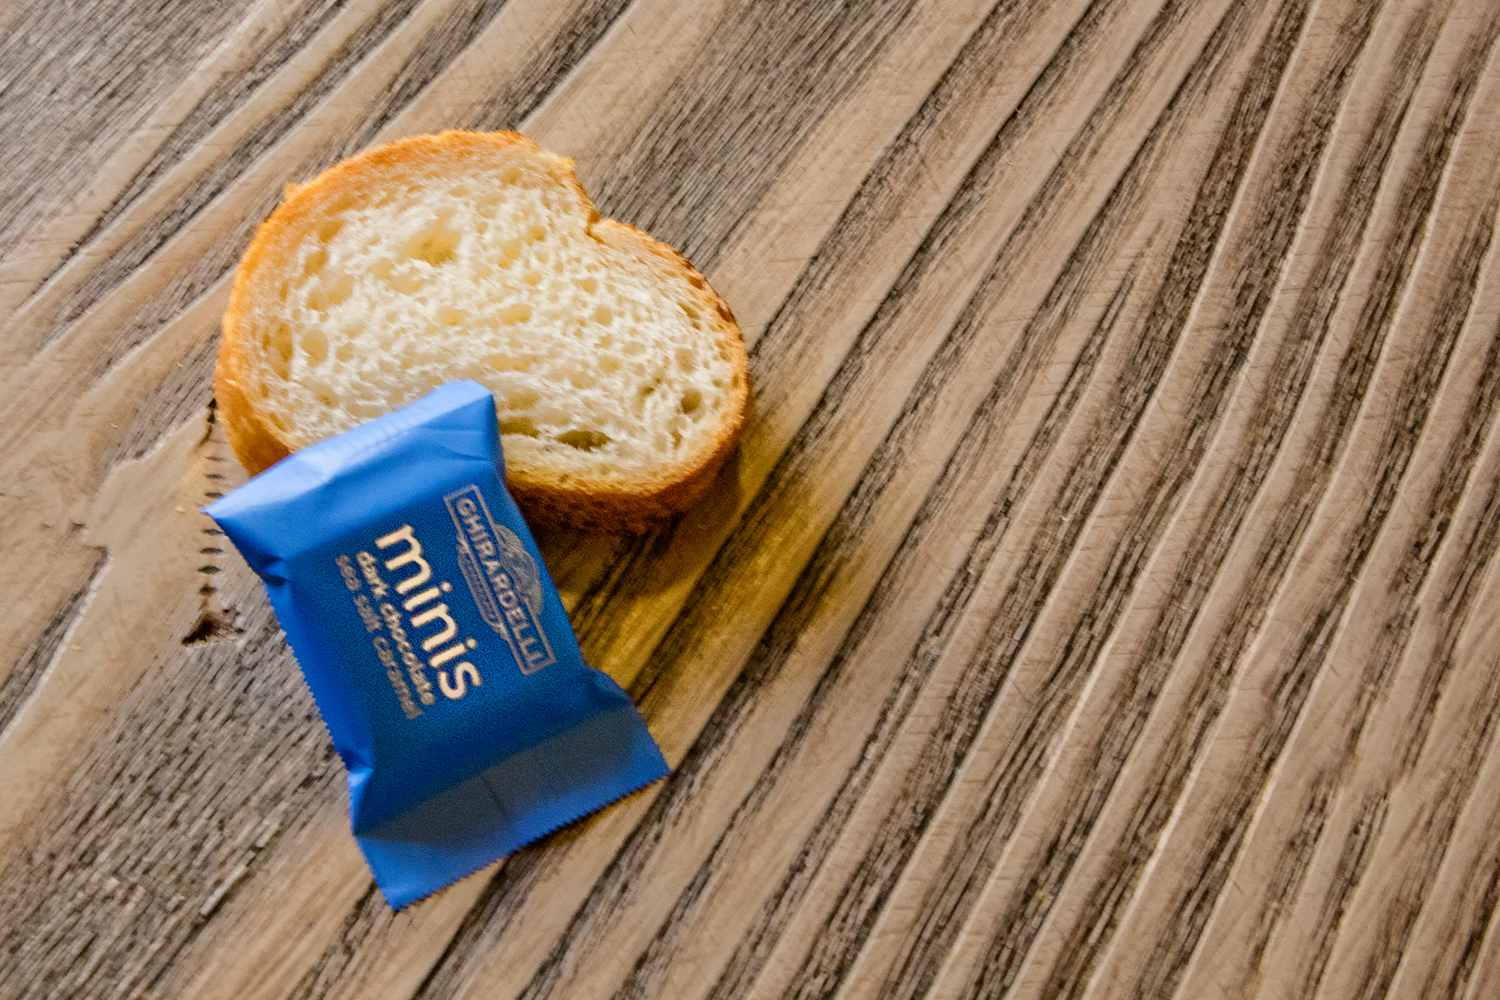 Free Samples of bread and chocolate At California Adventure